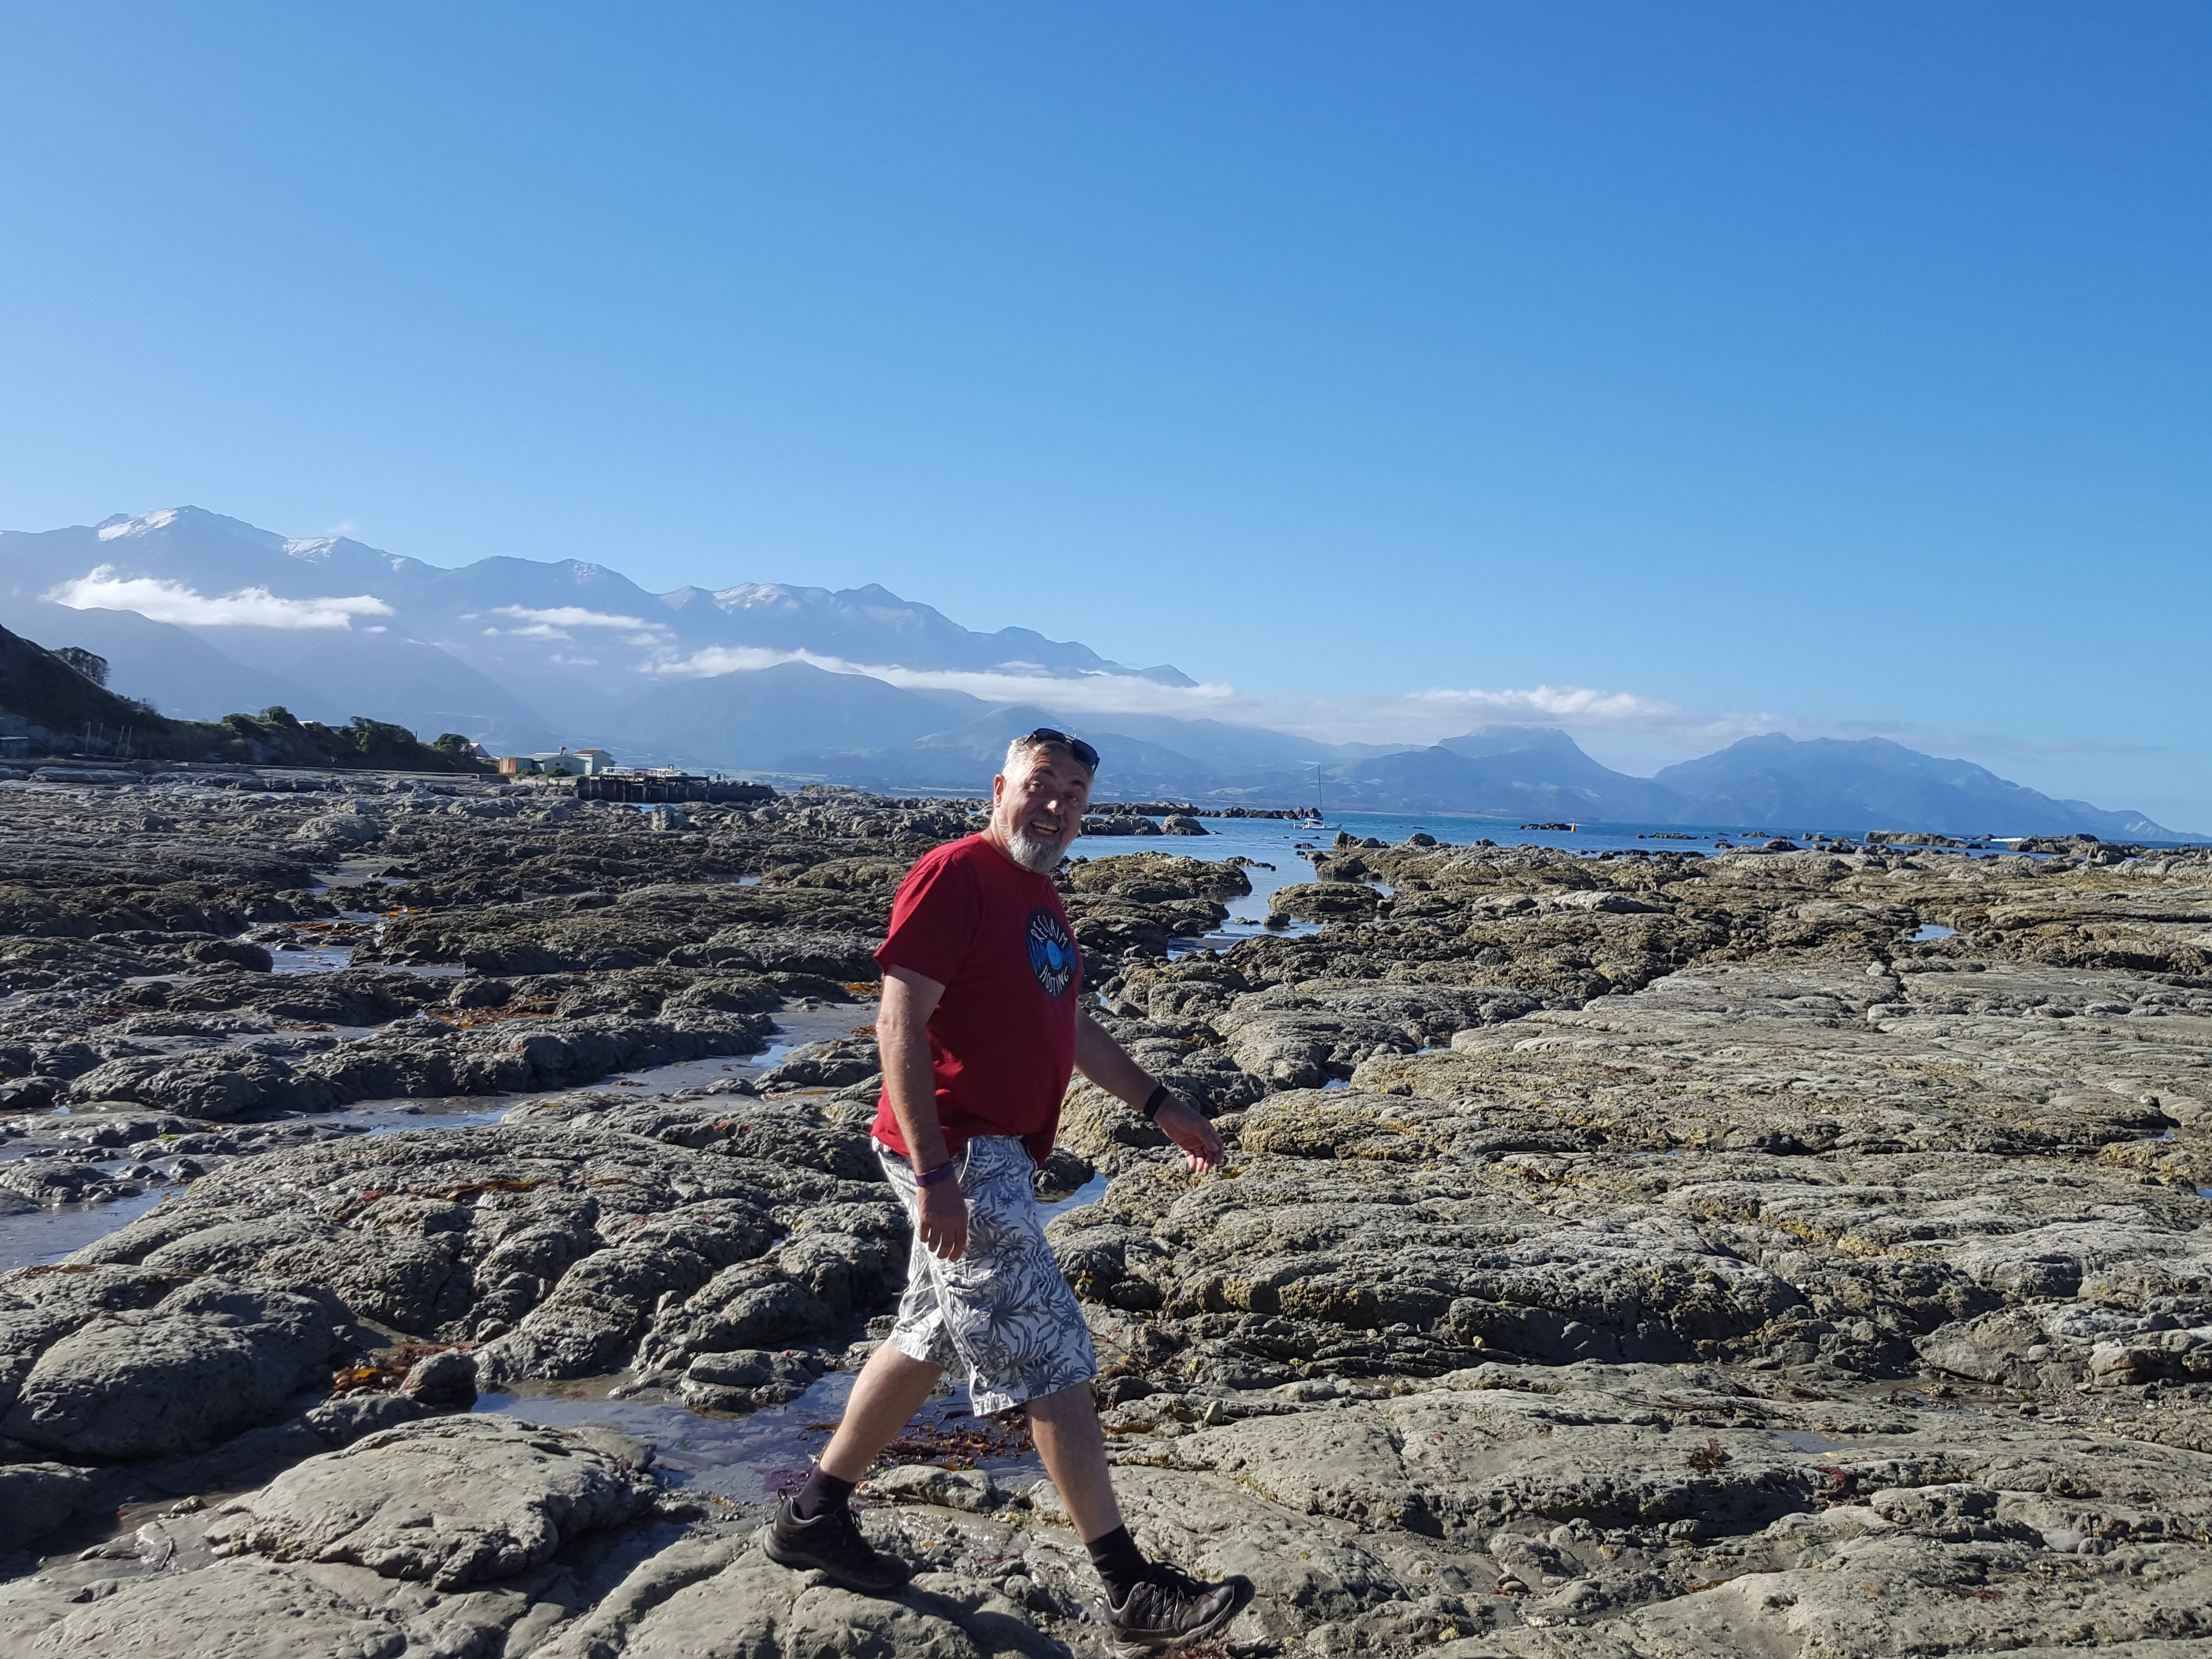 man wearing a red tee short and shorts walking across the rocky beach area at the coast. Mountains in the background with wisps of cloud in front of them.